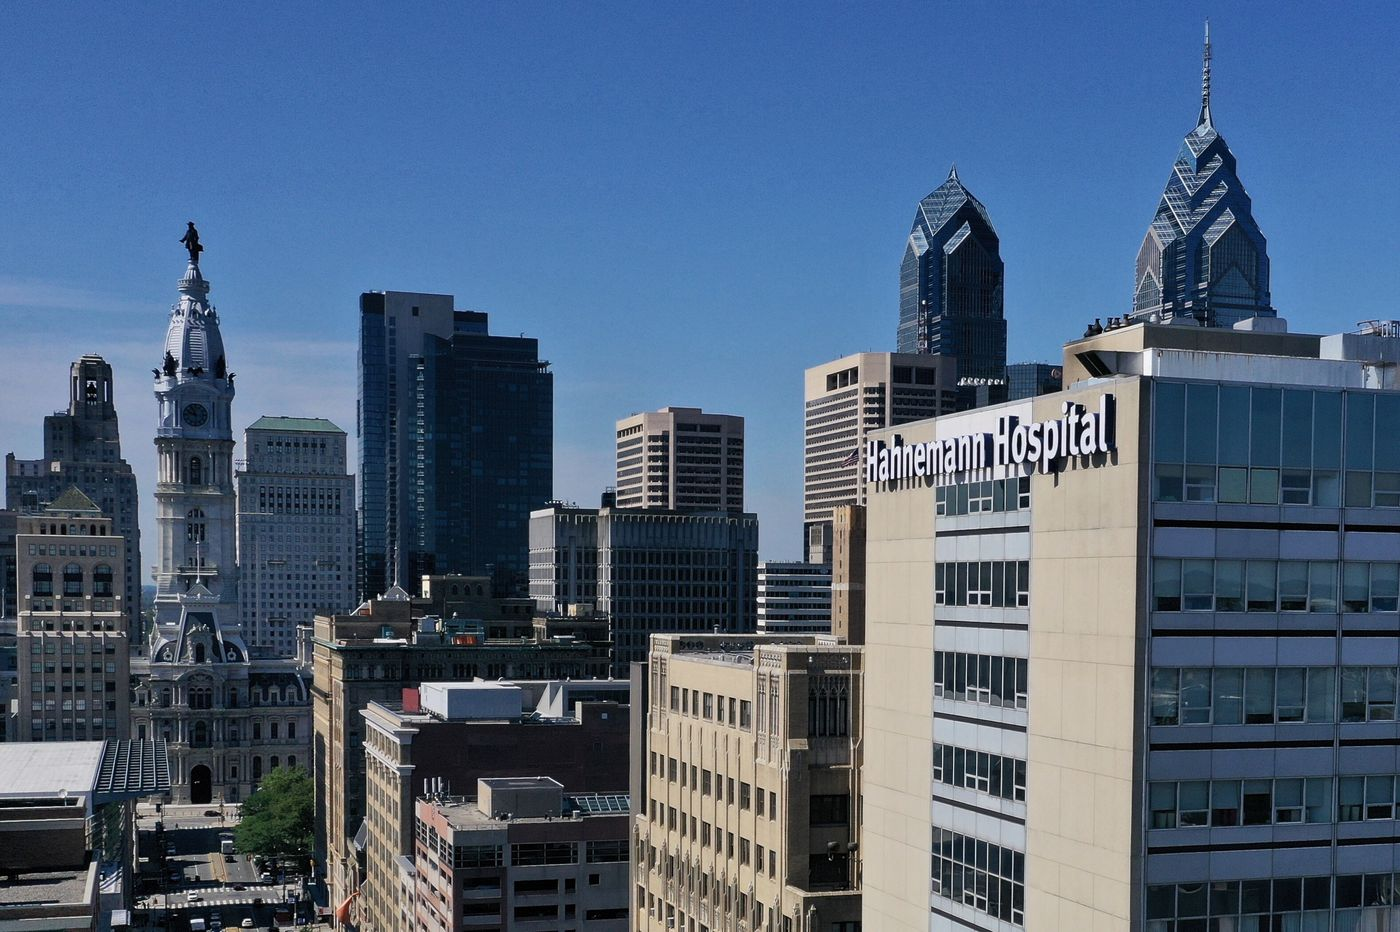 Hahnemann University Hospital's inner turmoil: A timeline of changes, layoffs, and closing